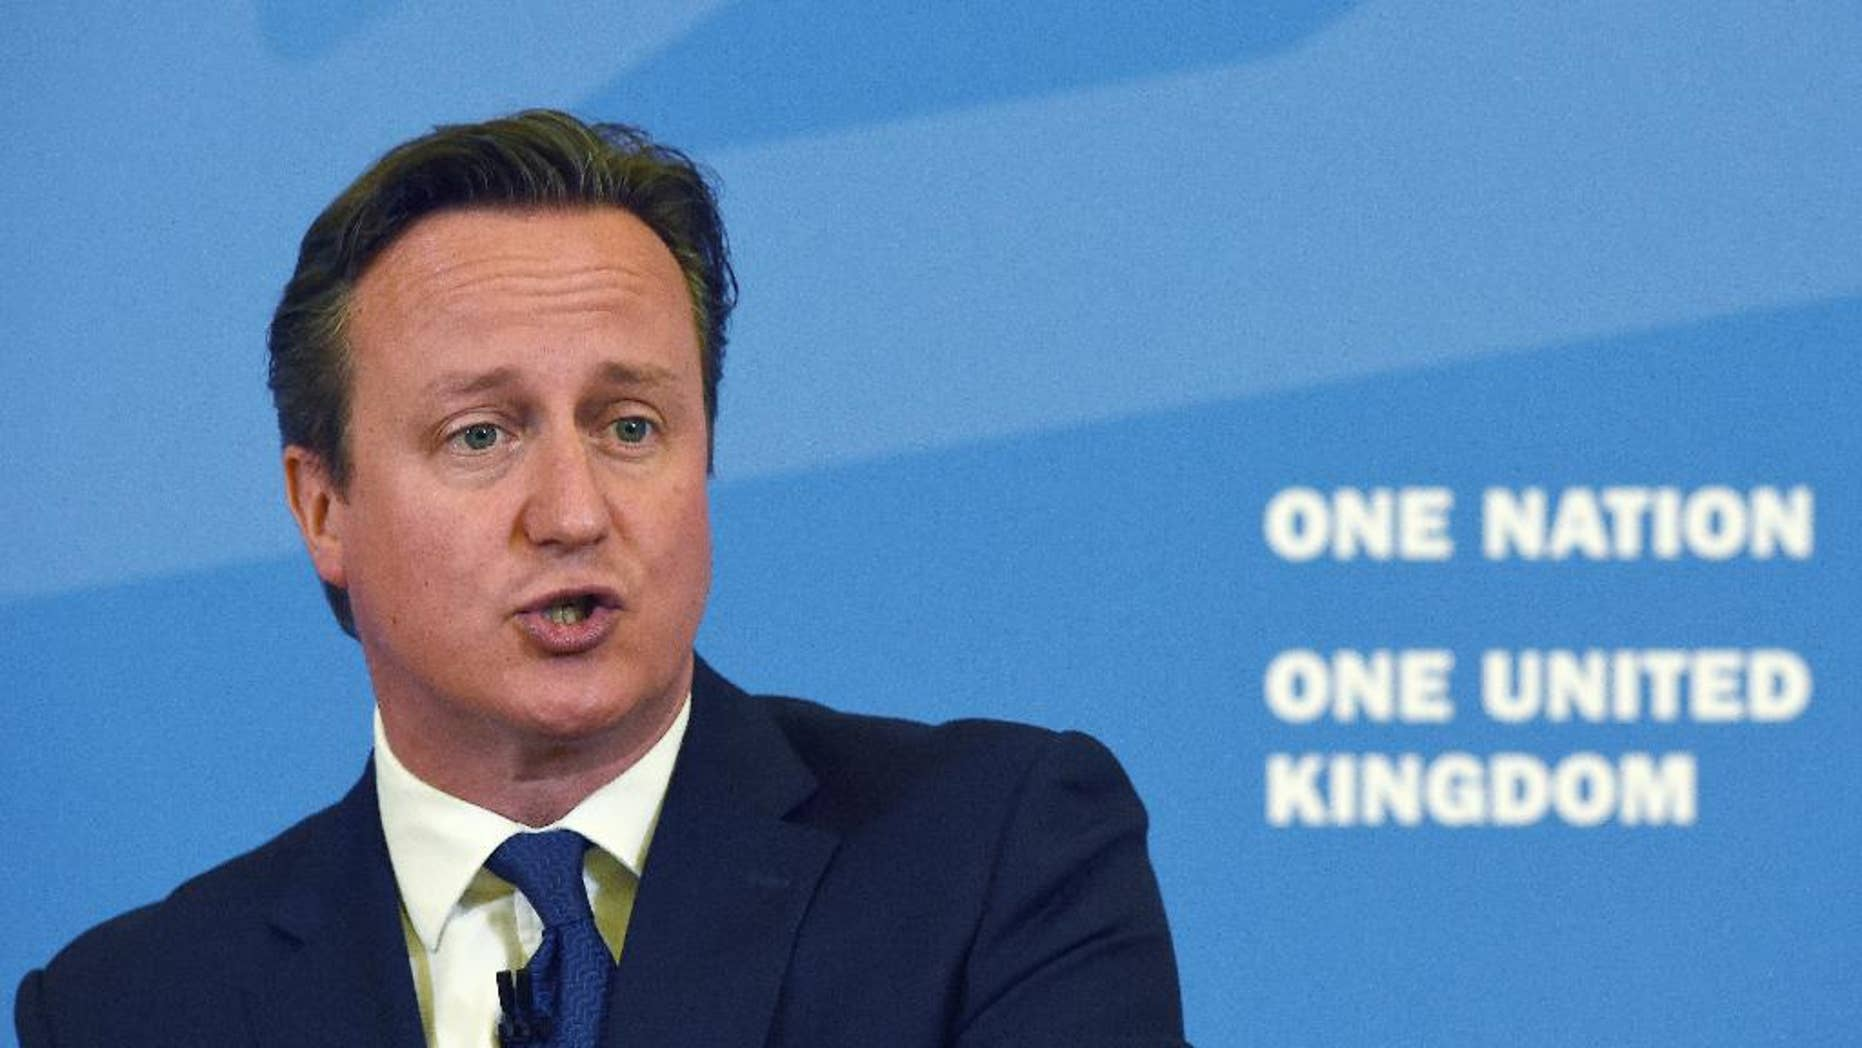 """Britain's Prime Minister David Cameron delivers a speech, where he said that new Government legislation will include powers to put non-violent extremists who radicalize young people """"out of action"""", at Ninestiles Academy in Birmingham, England, Monday, July 20, 2015. Cameron is launching a five-year plan to defeat Islamic extremism, saying it's time to counter the ideology that has attracted so many young people to the Islamic State group. In what is being billed as his most important speech on the subject, Cameron says the extremist ideology of the group, also known as ISIL, must be countered so Britain becomes a more cohesive nation in which young Muslims feel they have a stake. (Paul Ellis/PA via AP)     UNITED KINGDOM OUT      -    NO SALES     -    NO ARCHIVES"""